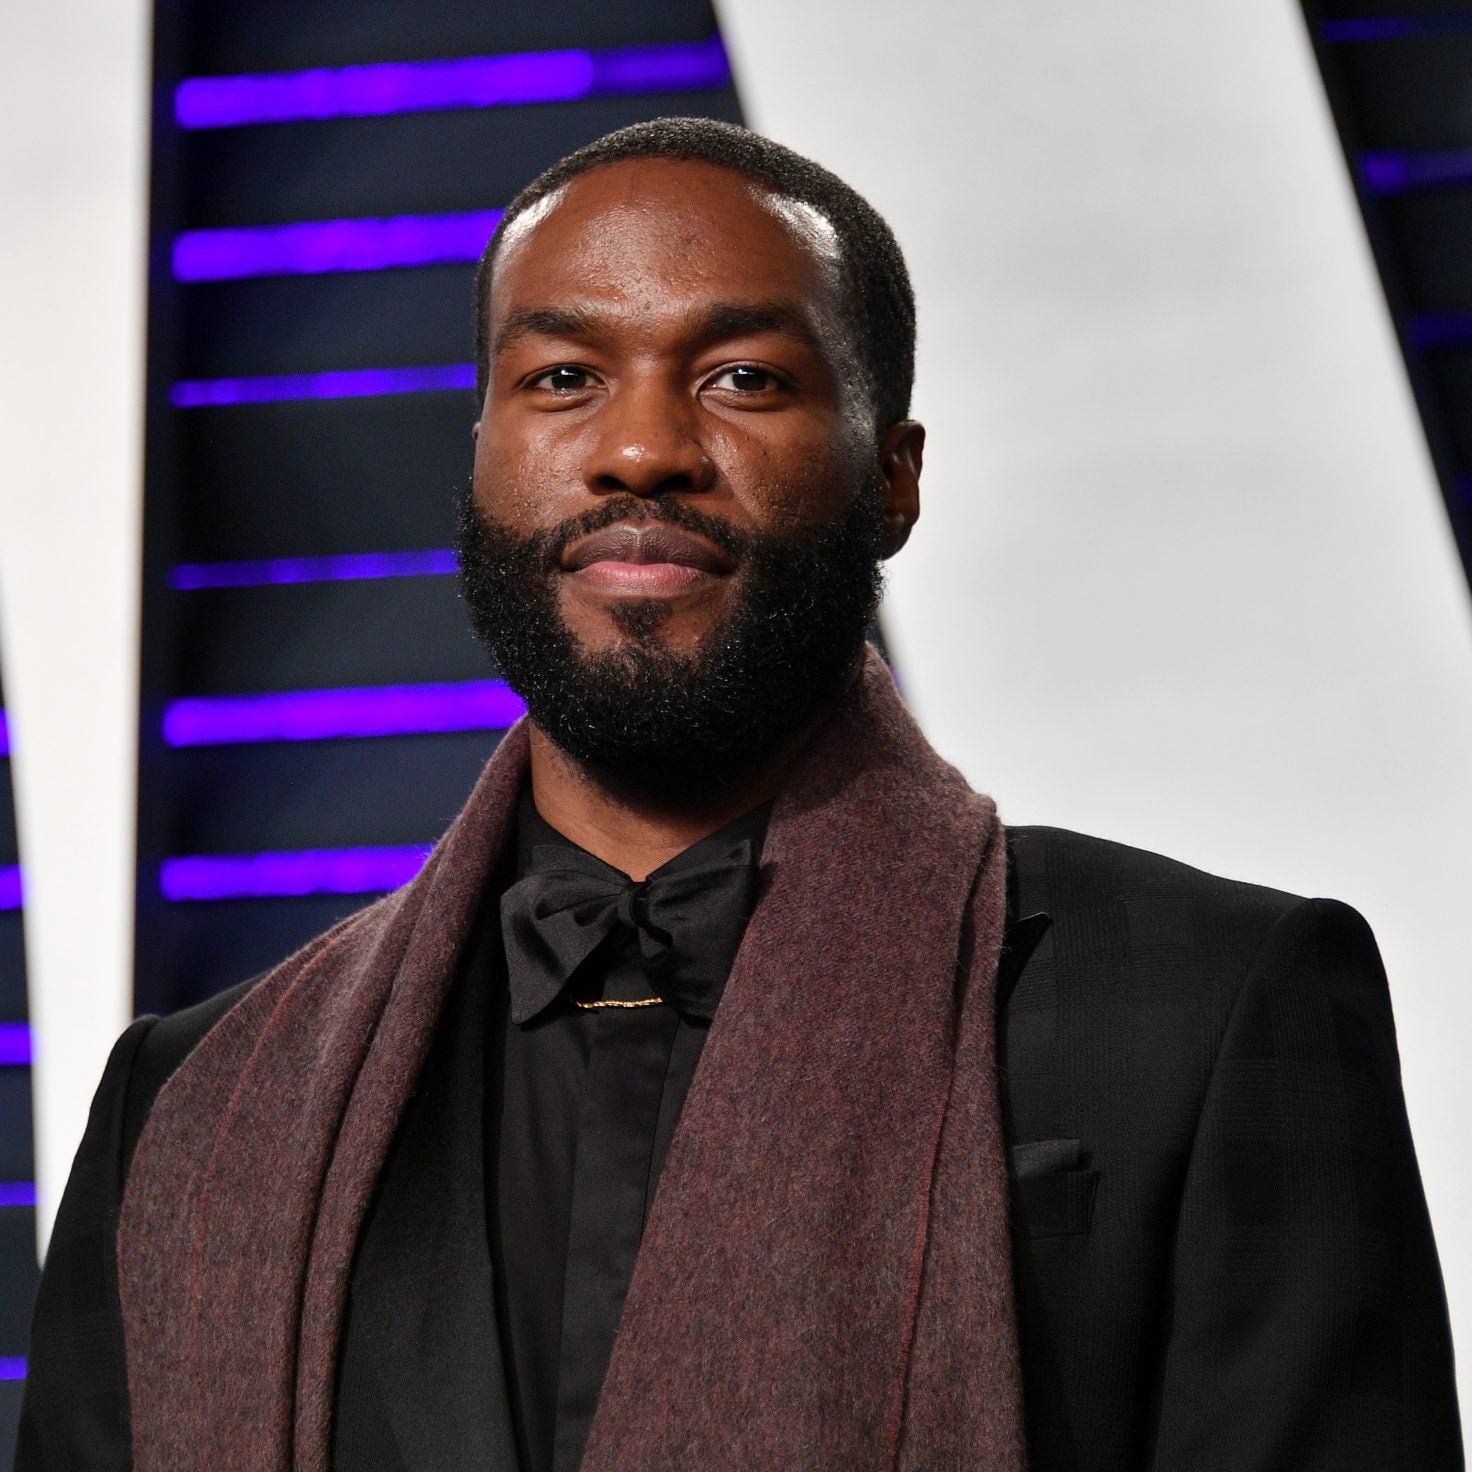 Yahya Abdul-Mateen II Dedicates First Emmy Award To 'All The Black Women In My Life'